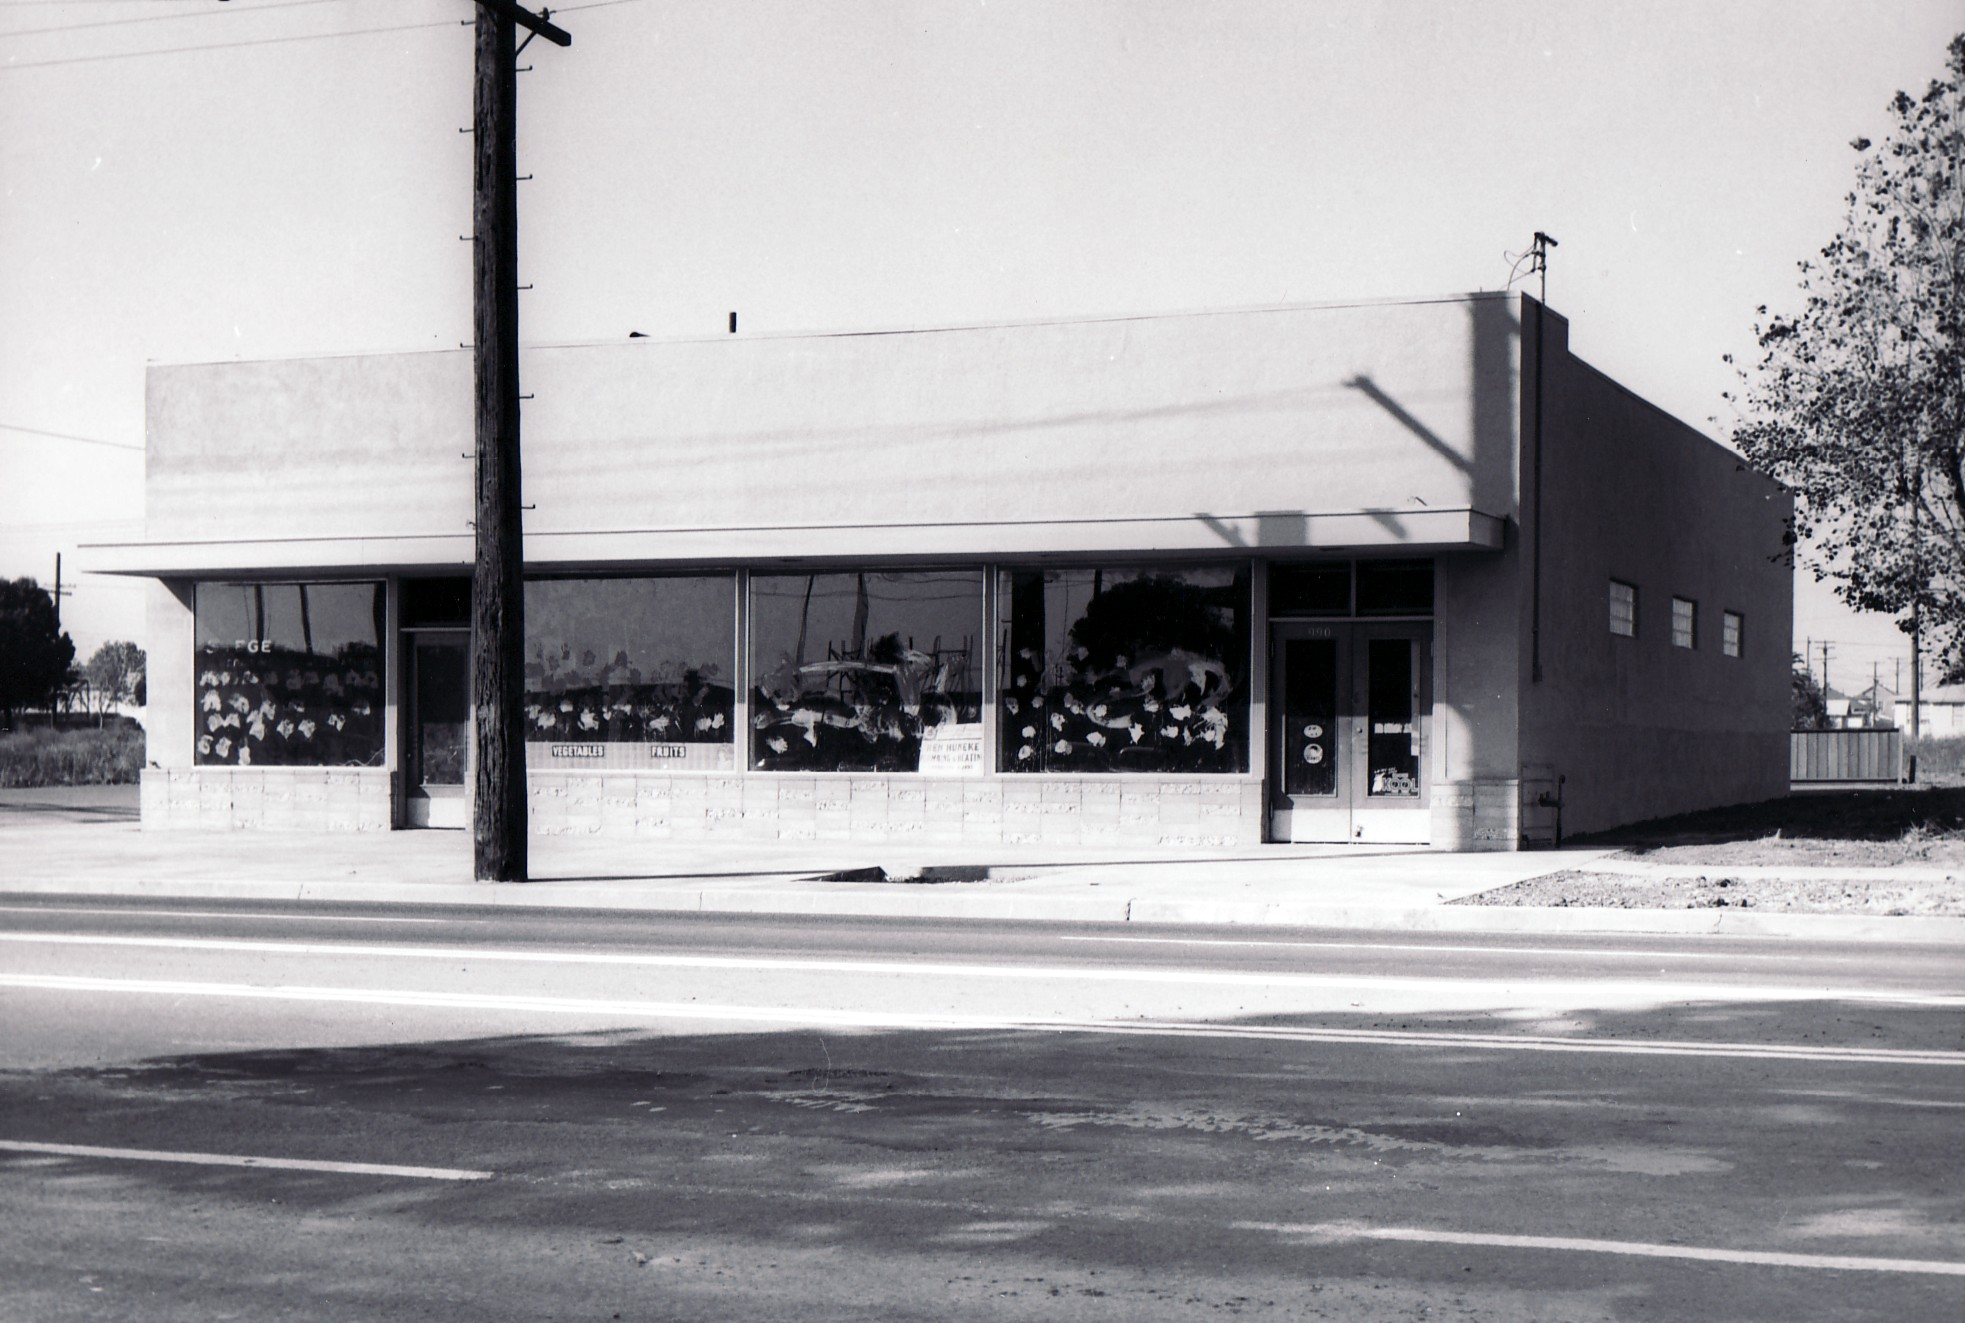 Laboratory of Comparative Biology Annex, 1301 Cutting Blvd., Richmond, CA, October 1961.